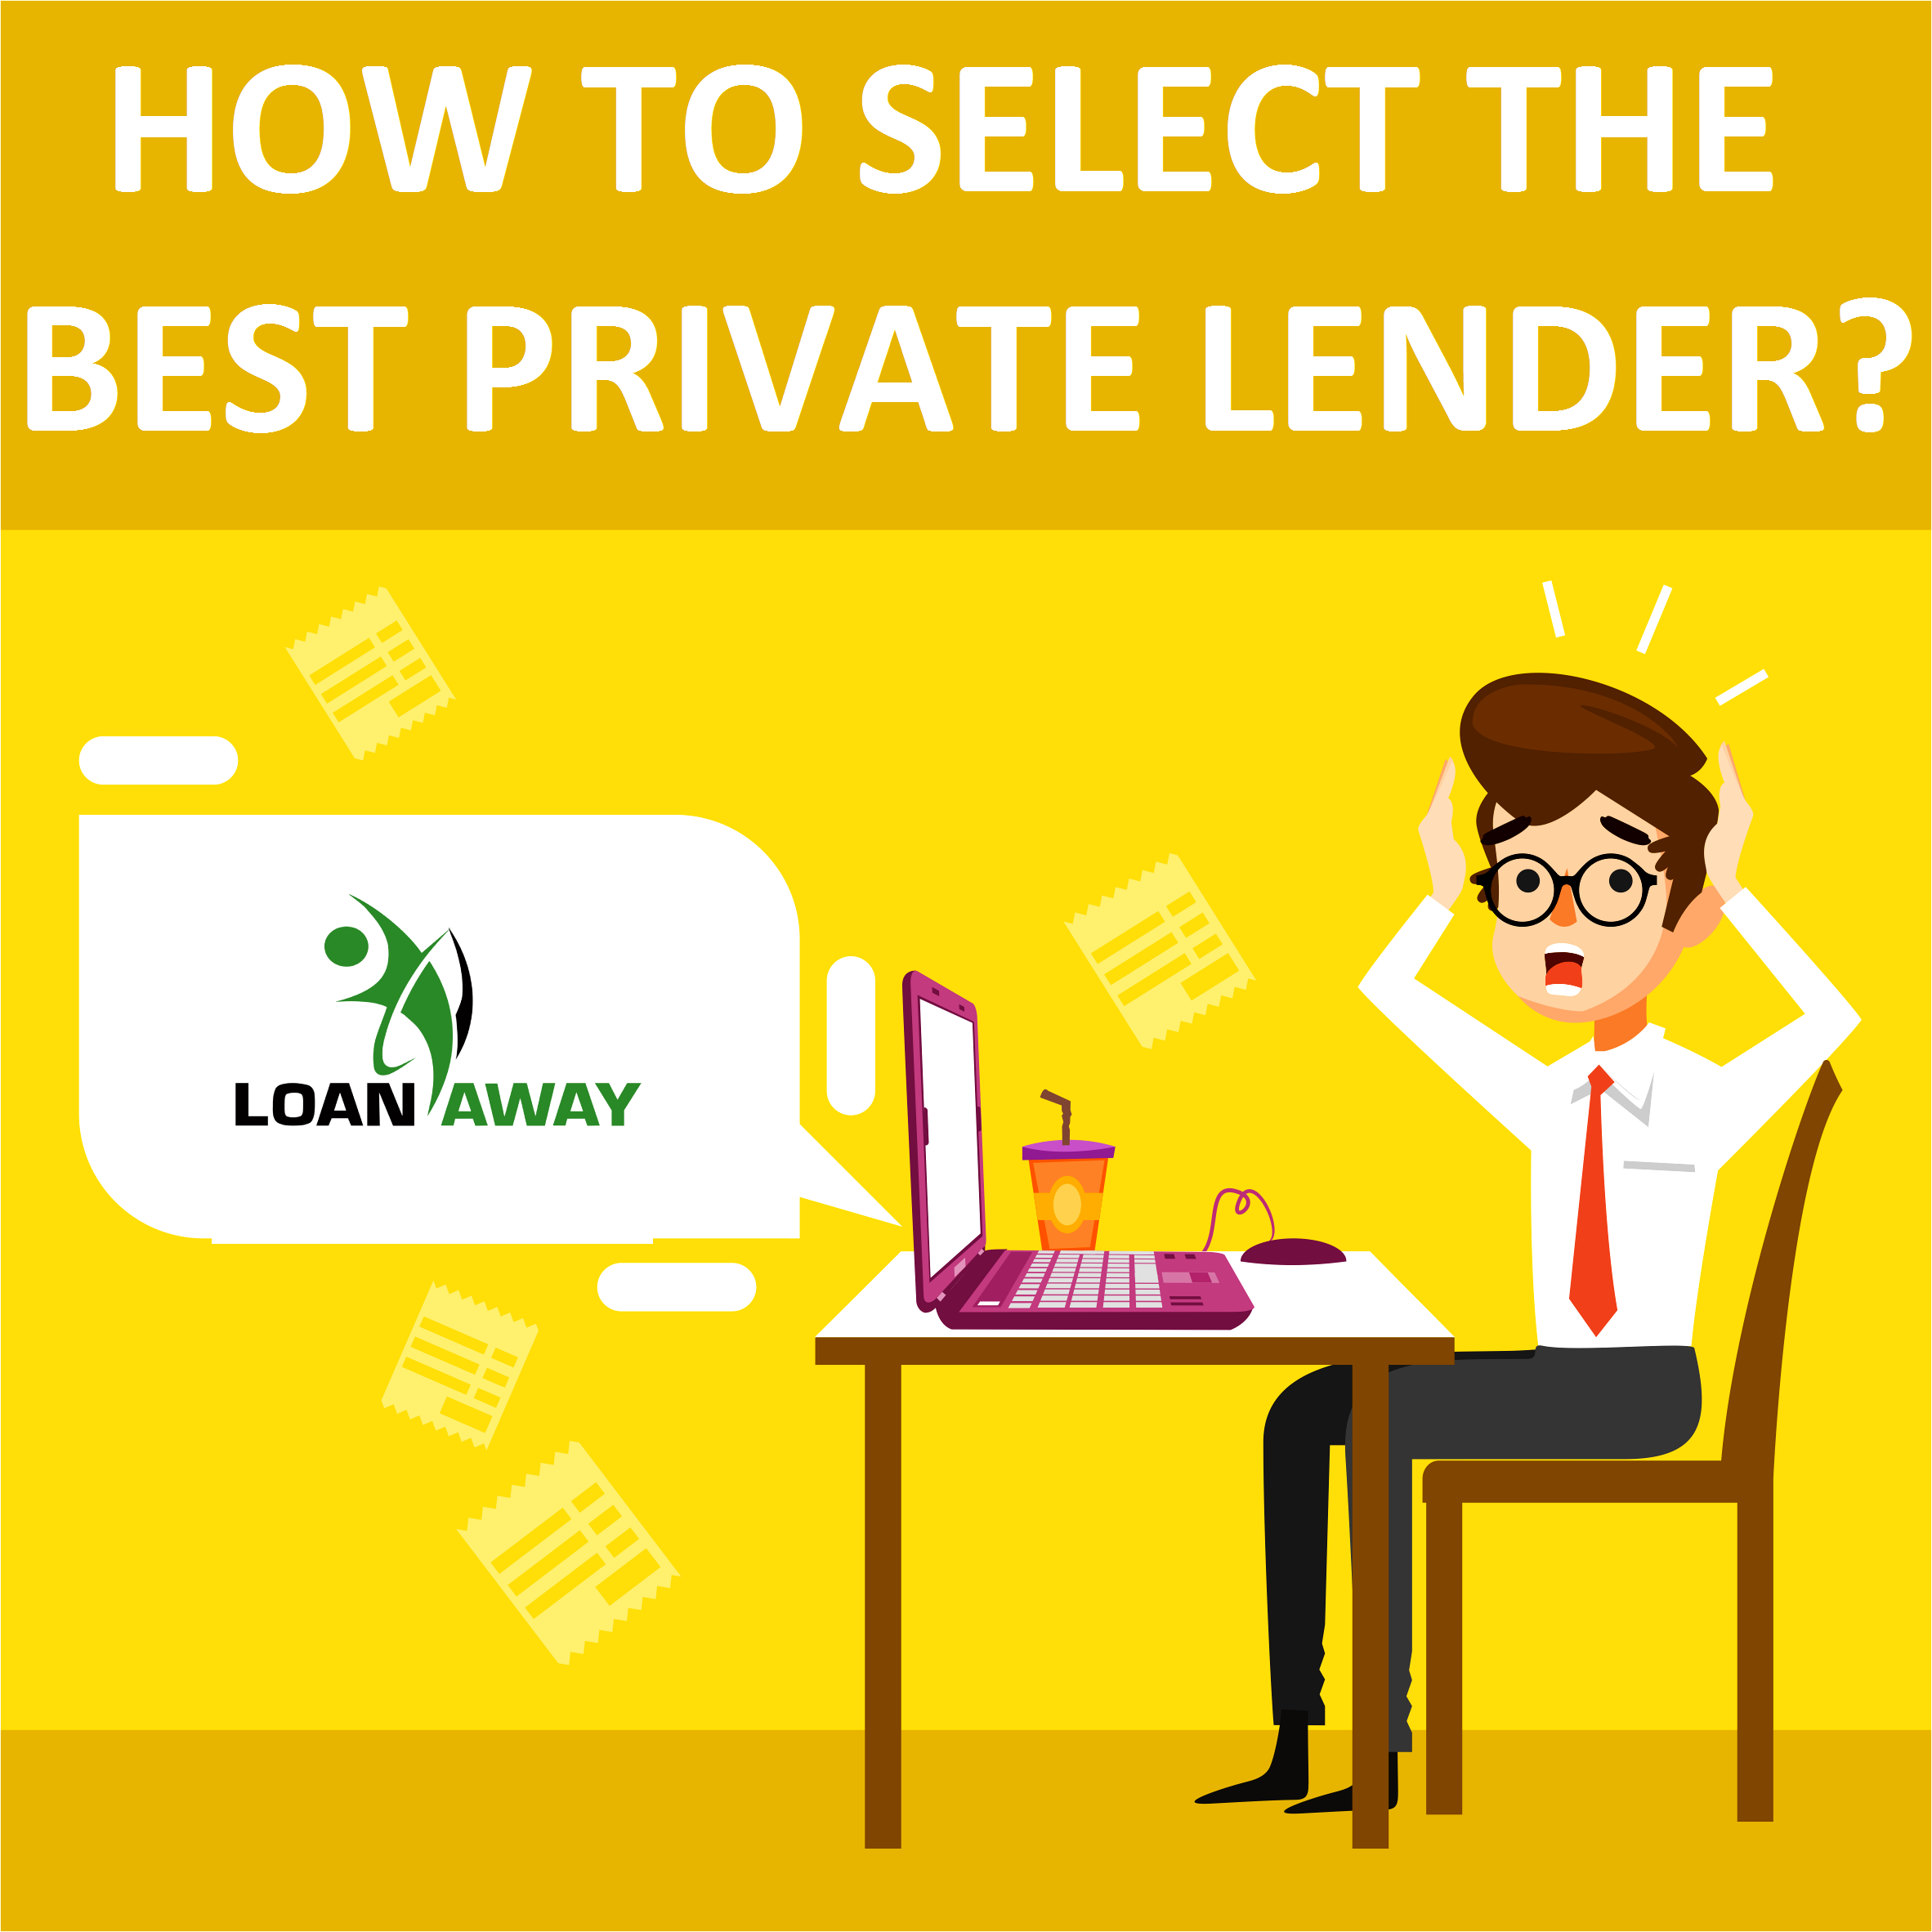 How To Select The Best Private Lender?